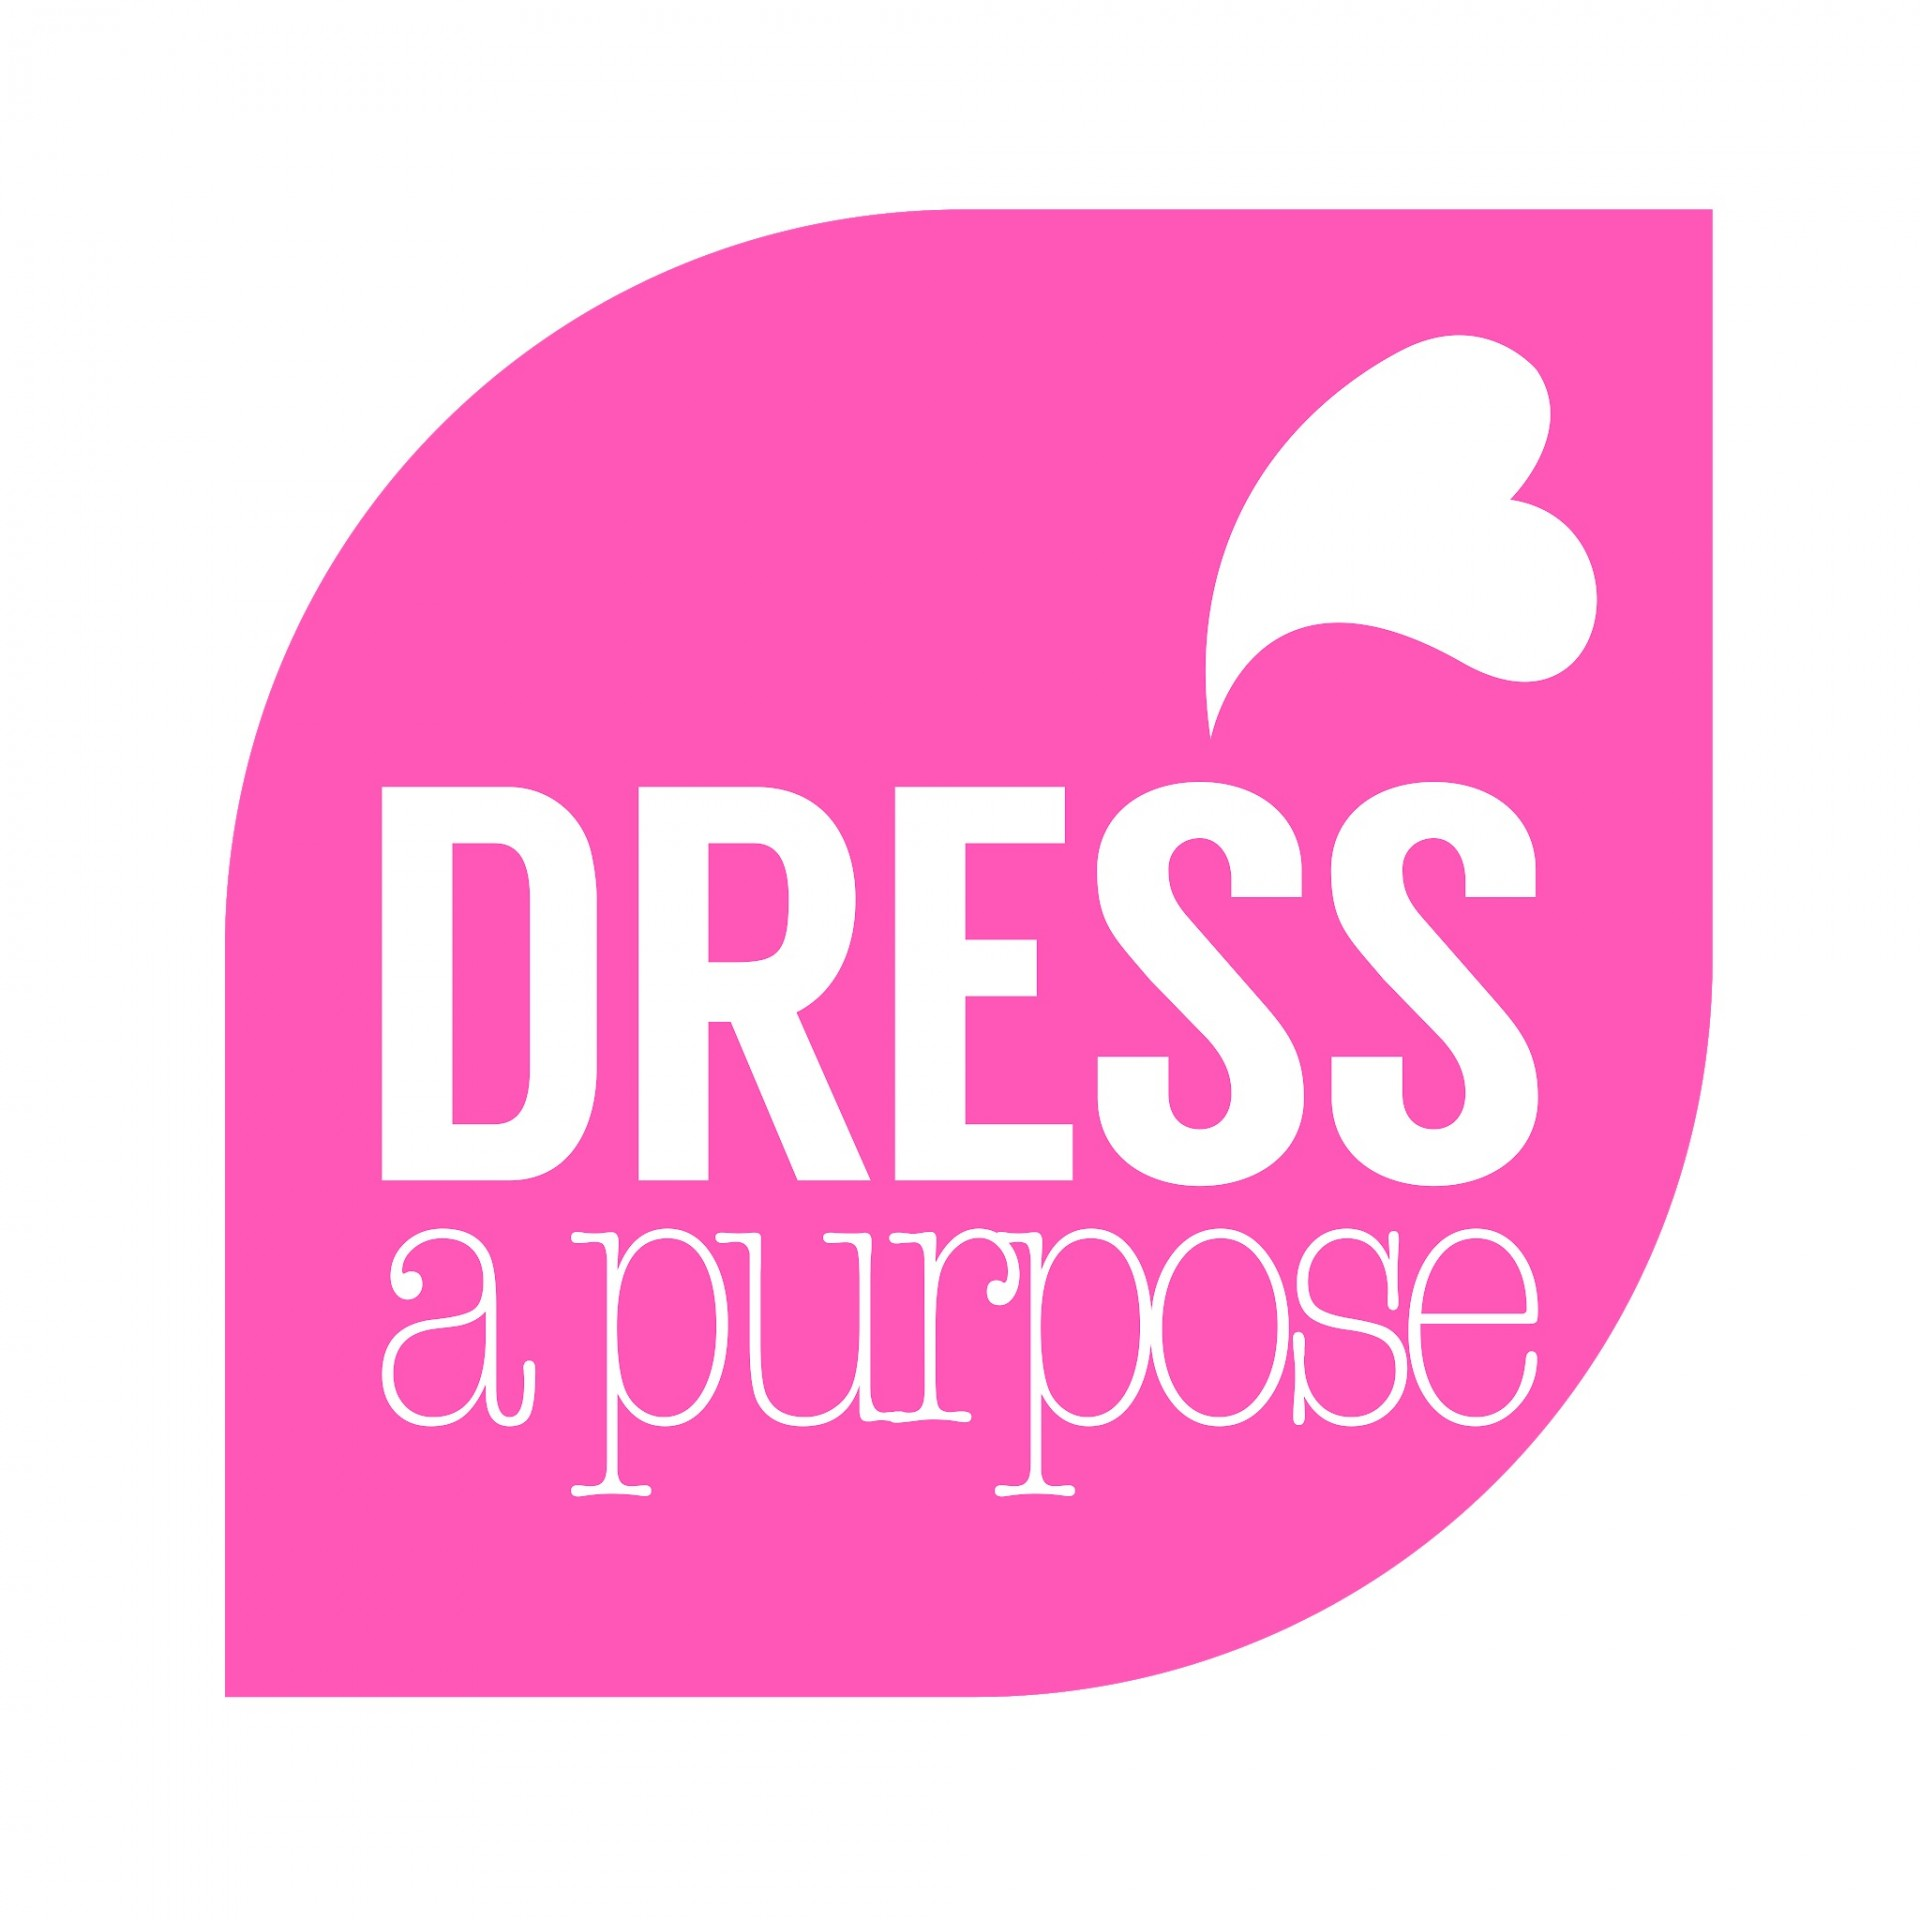 DRESS A PURPOSE